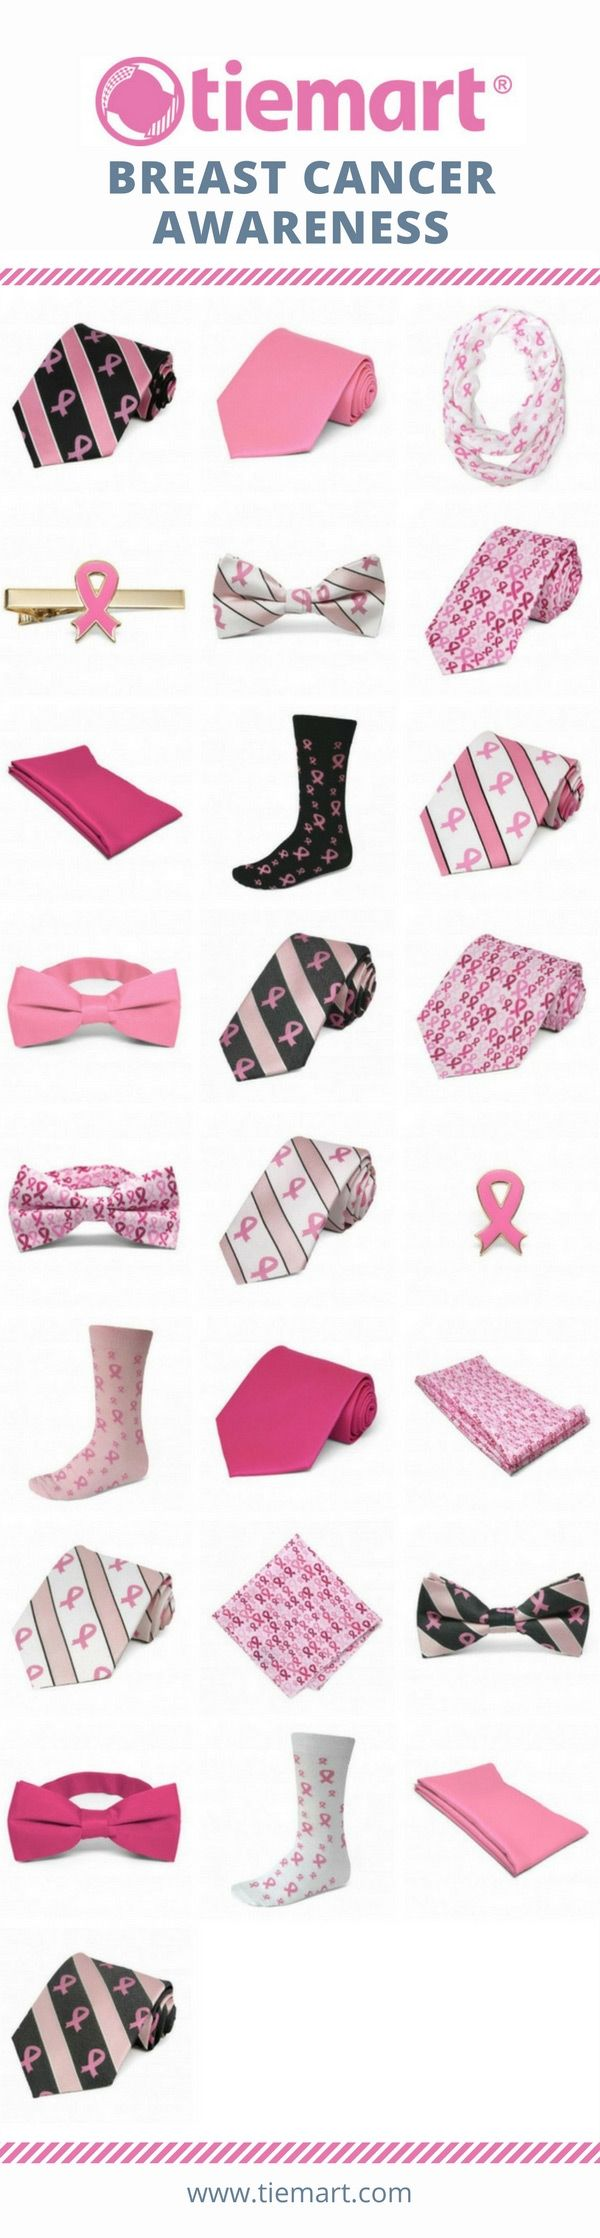 Show your pink pride with these breast cancer awareness ties, socks, scarves and other accessories. Budget friendly prices with large quantities in stock for your group events.